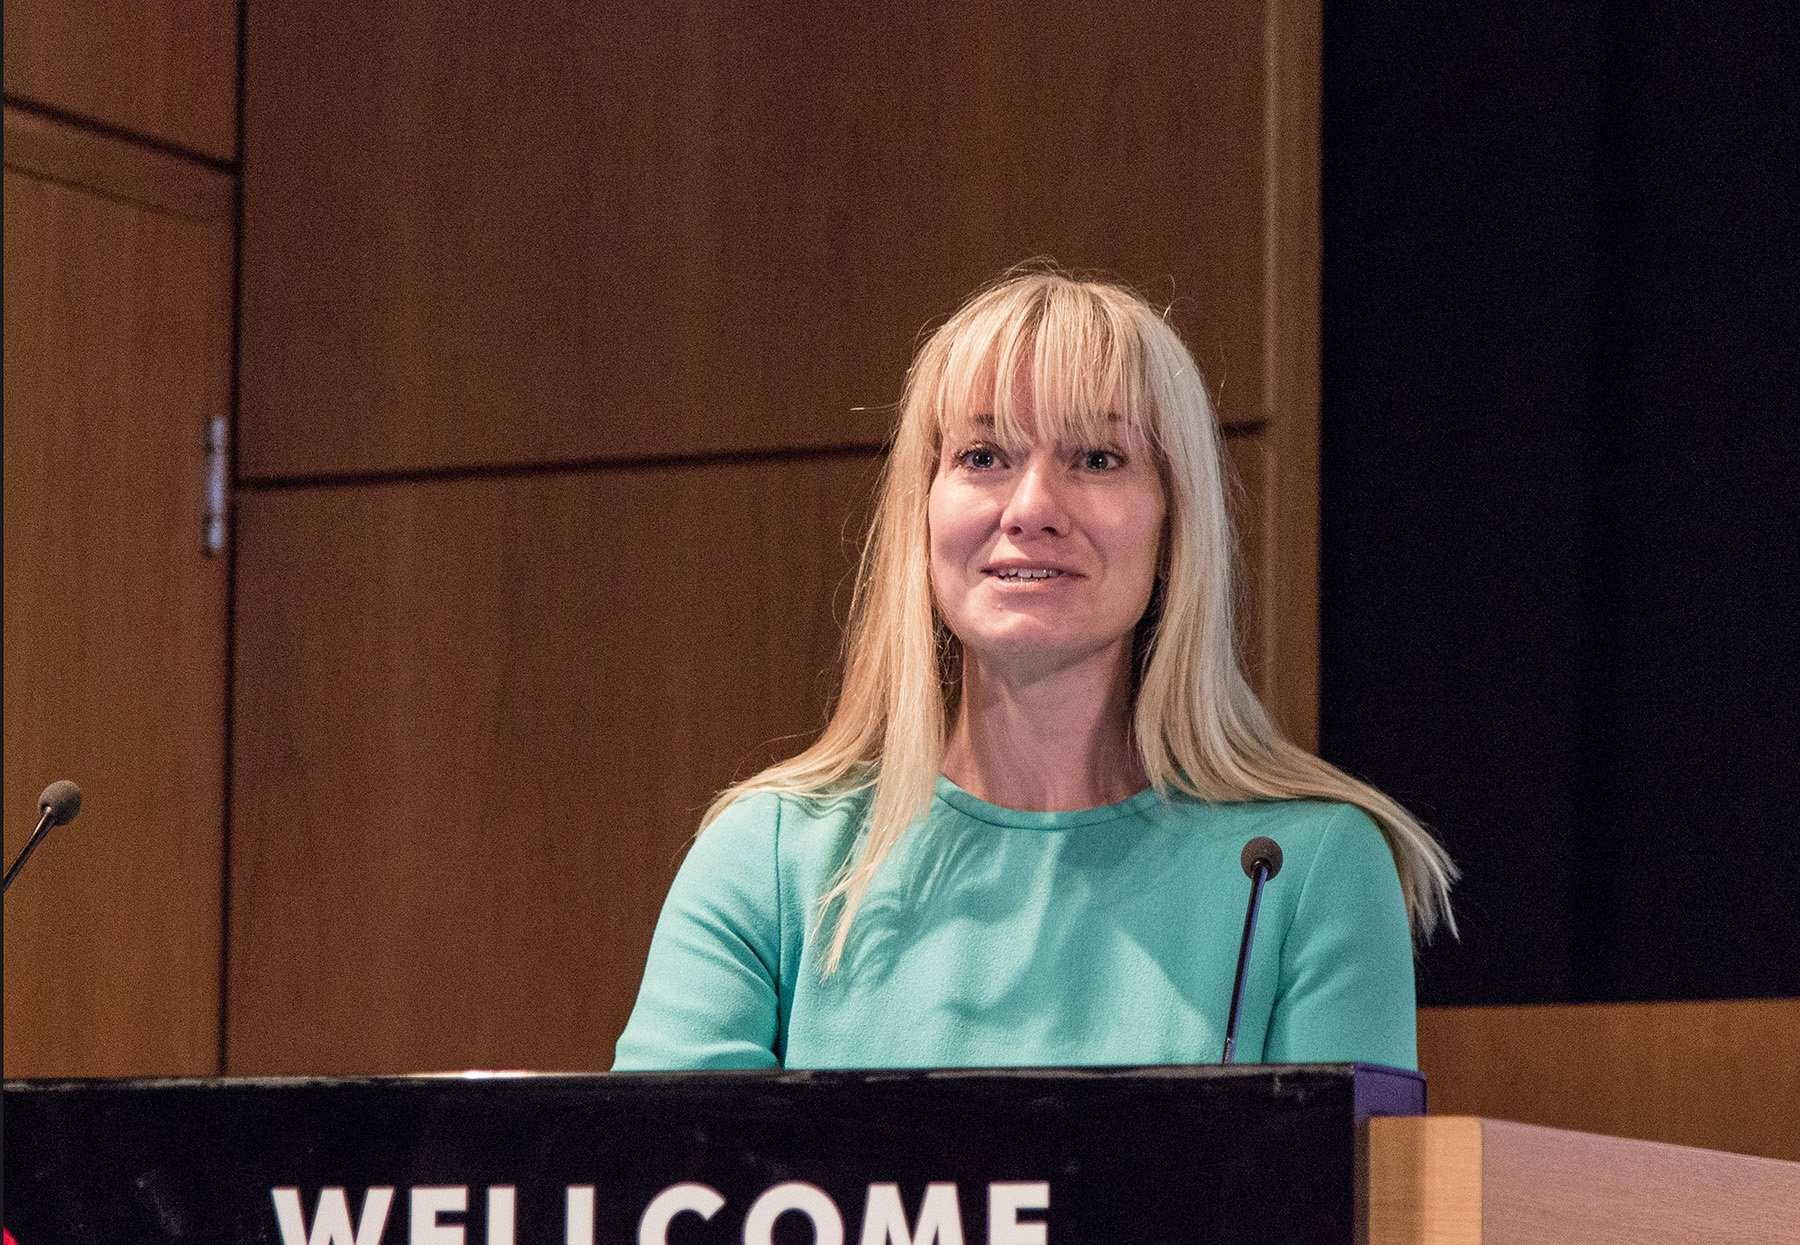 Baronness Nicola Blackwood speaking at RAREsummit19